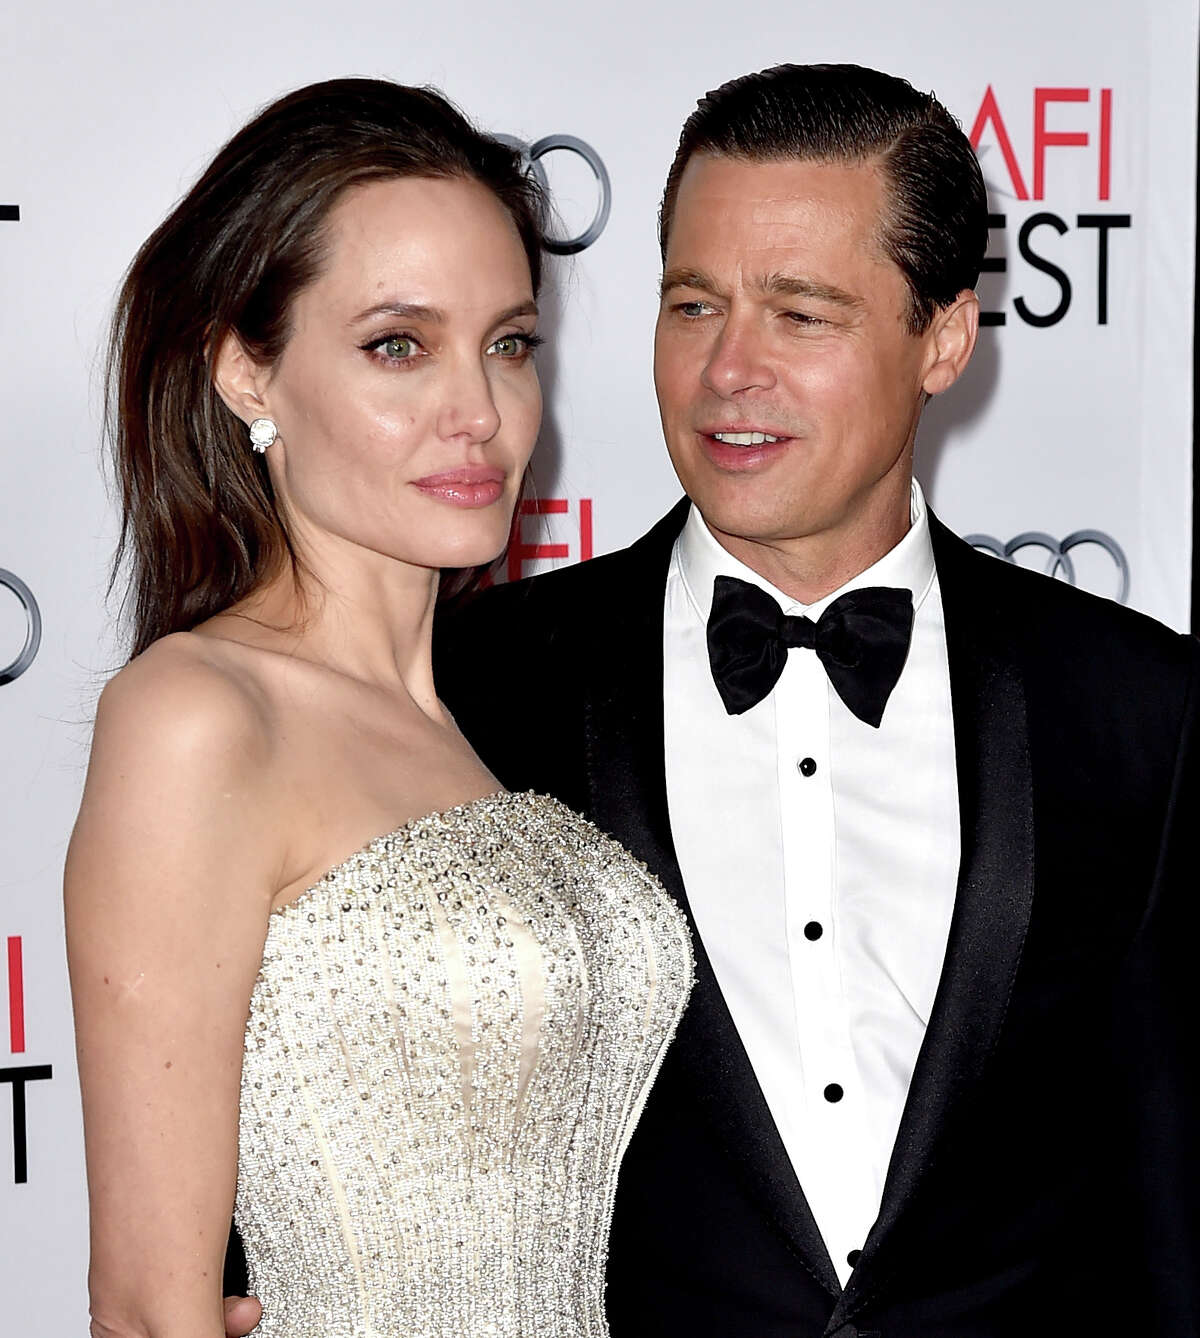 Brangelina is no more since Angelina Jolie filed for divorce from Brad Pitt on Tuesday, September 20, 2016. Tocommiseratethe good times, continue clicking to see the milestones in the celebrity couple of nearly 13 years.